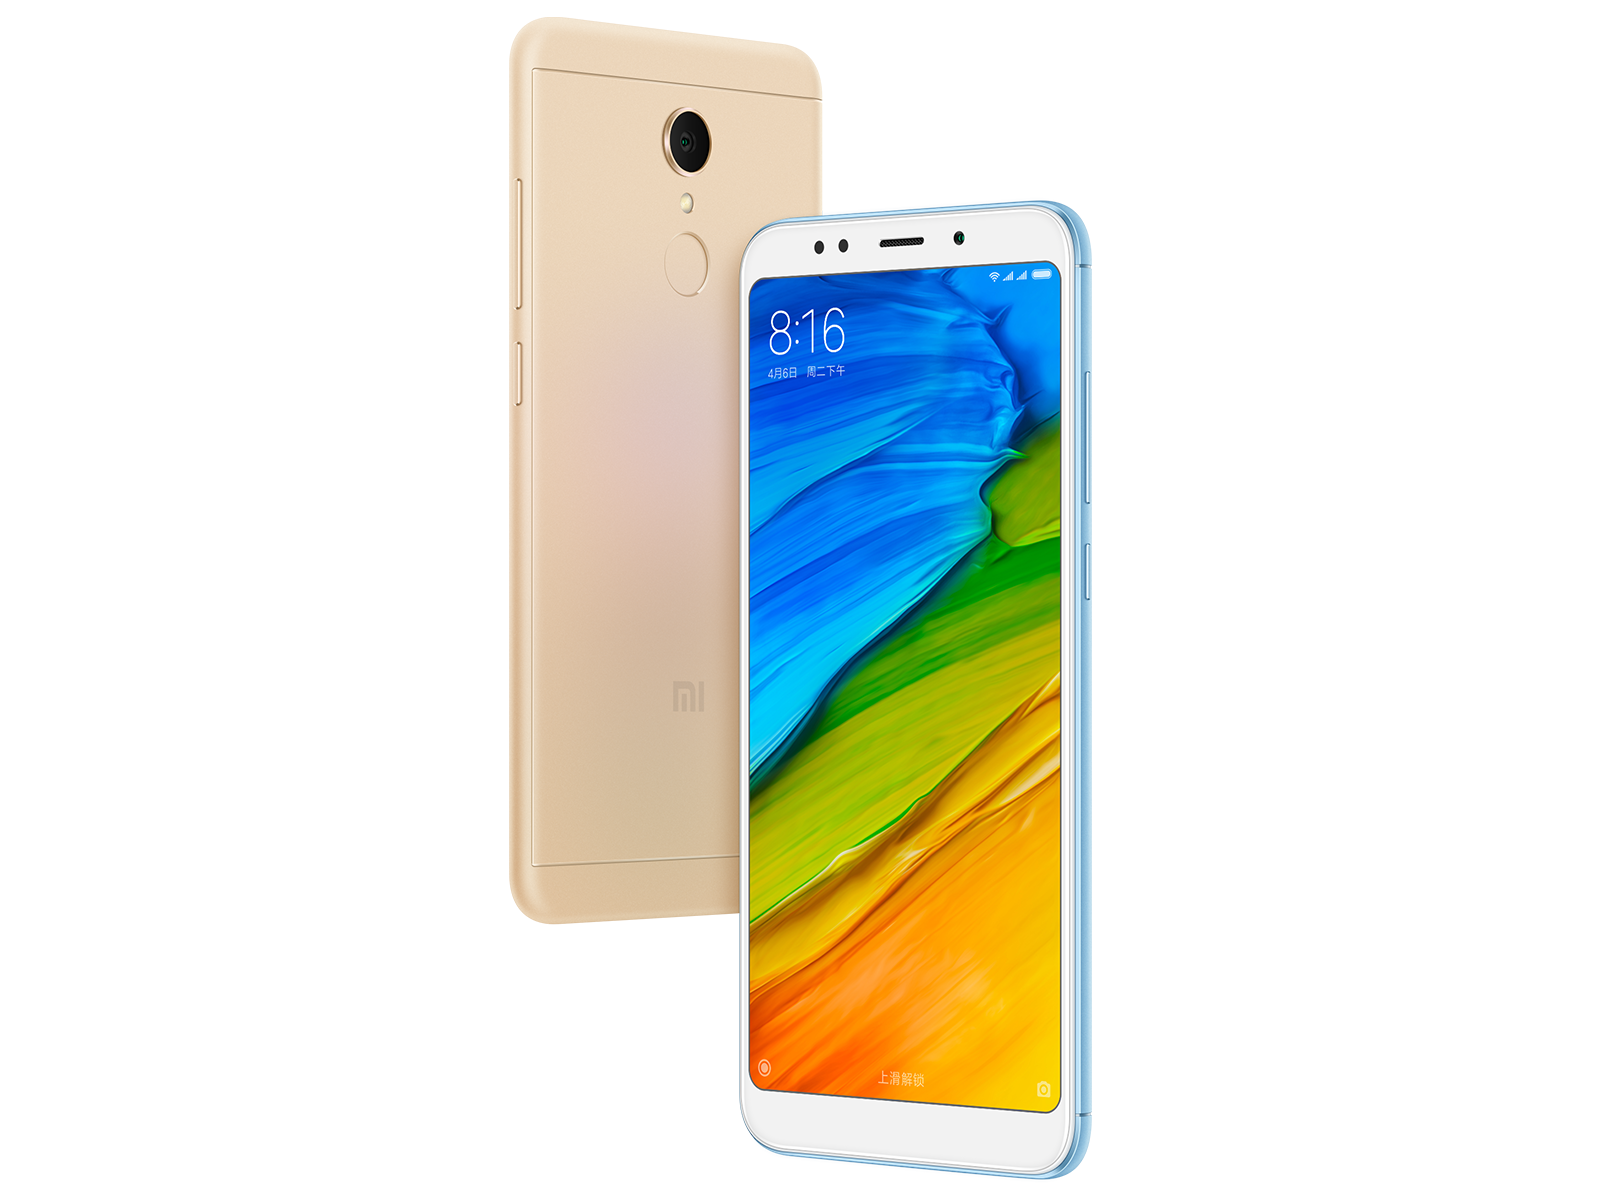 Courte Critique Du Smartphone Xiaomi Redmi 5 Plus Notebookcheck Fr